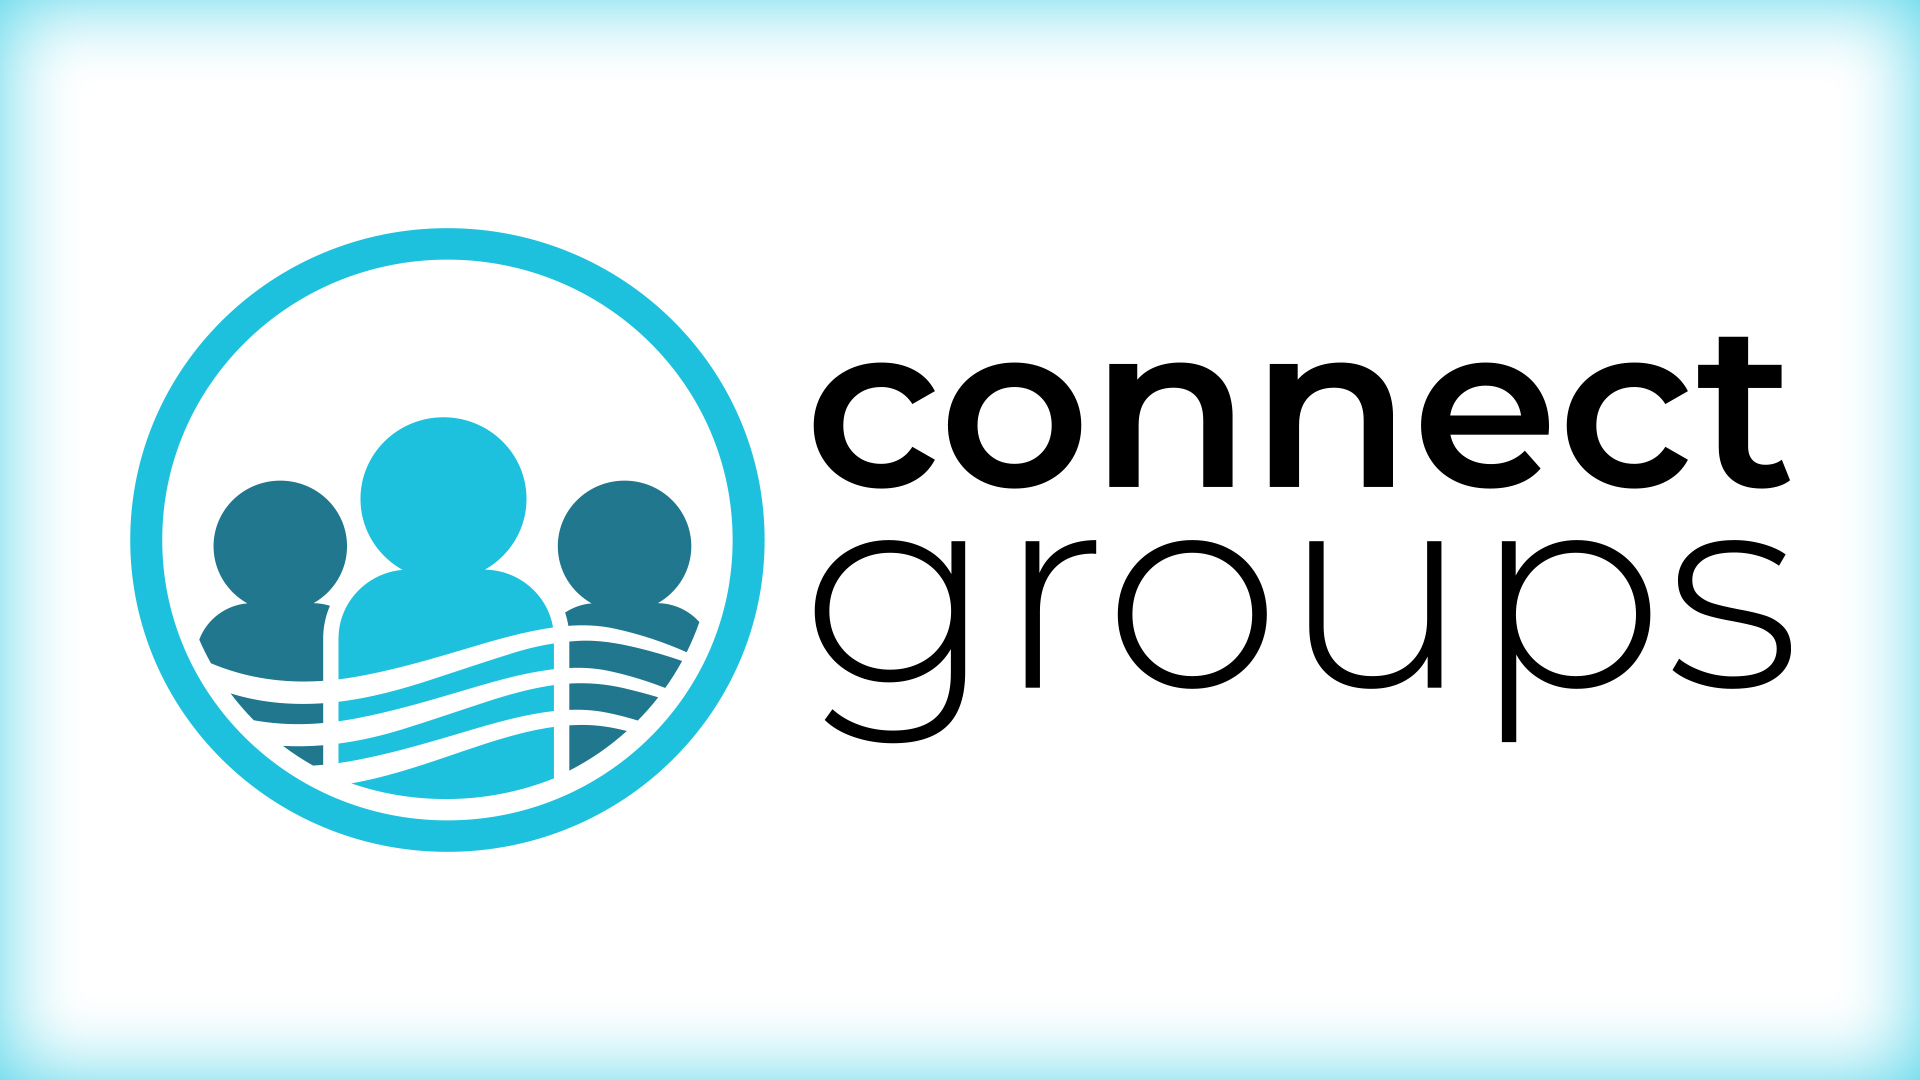 Connect Groups - PCO.jpg